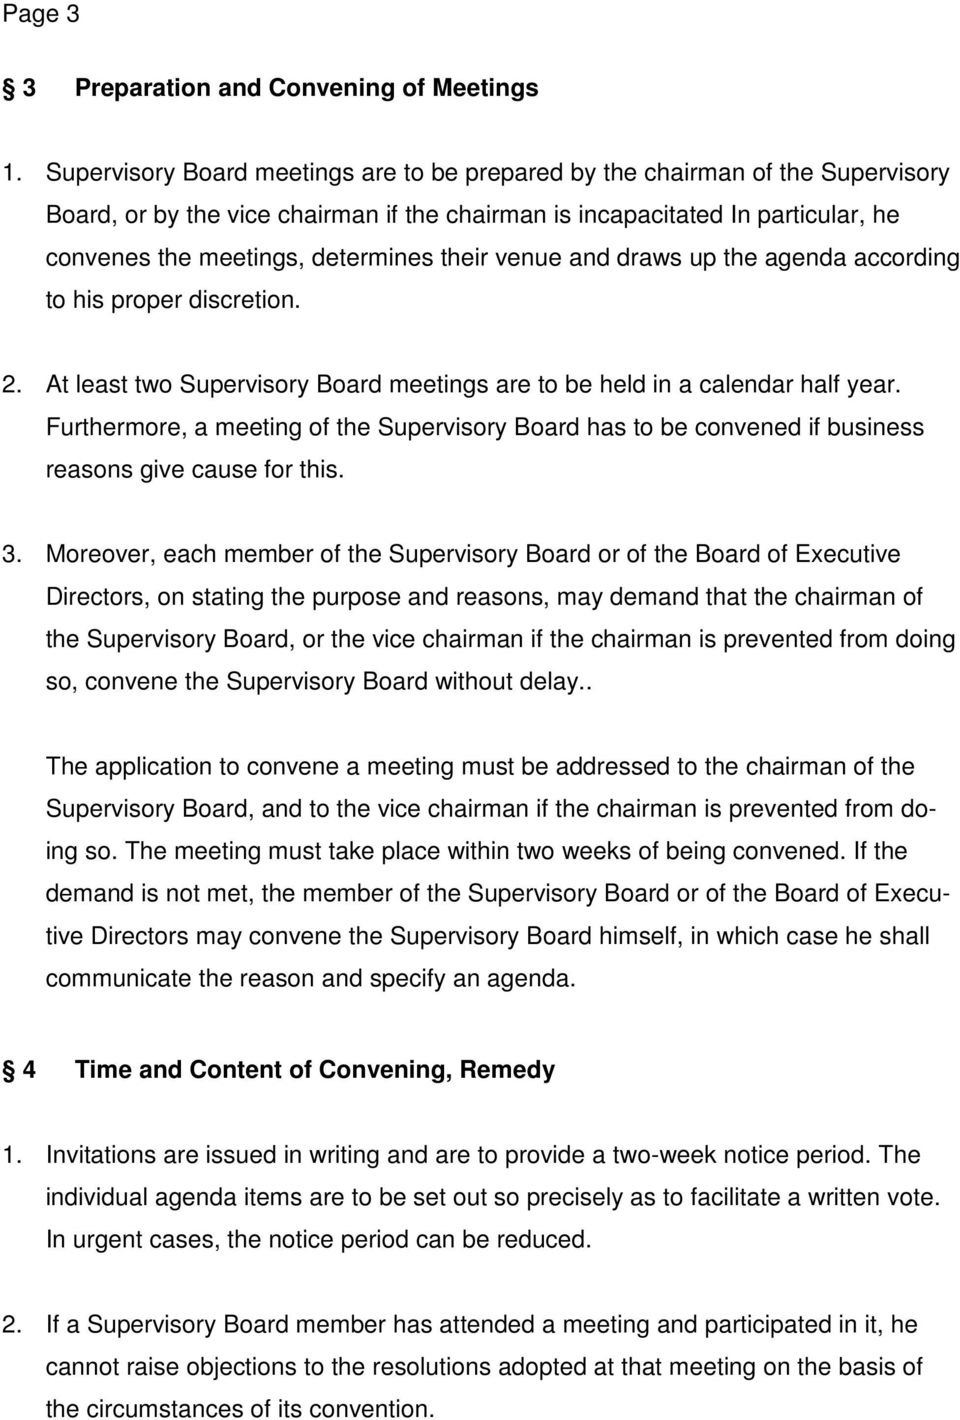 their venue and draws up the agenda according to his proper discretion. 2. At least two Supervisory Board meetings are to be held in a calendar half year.